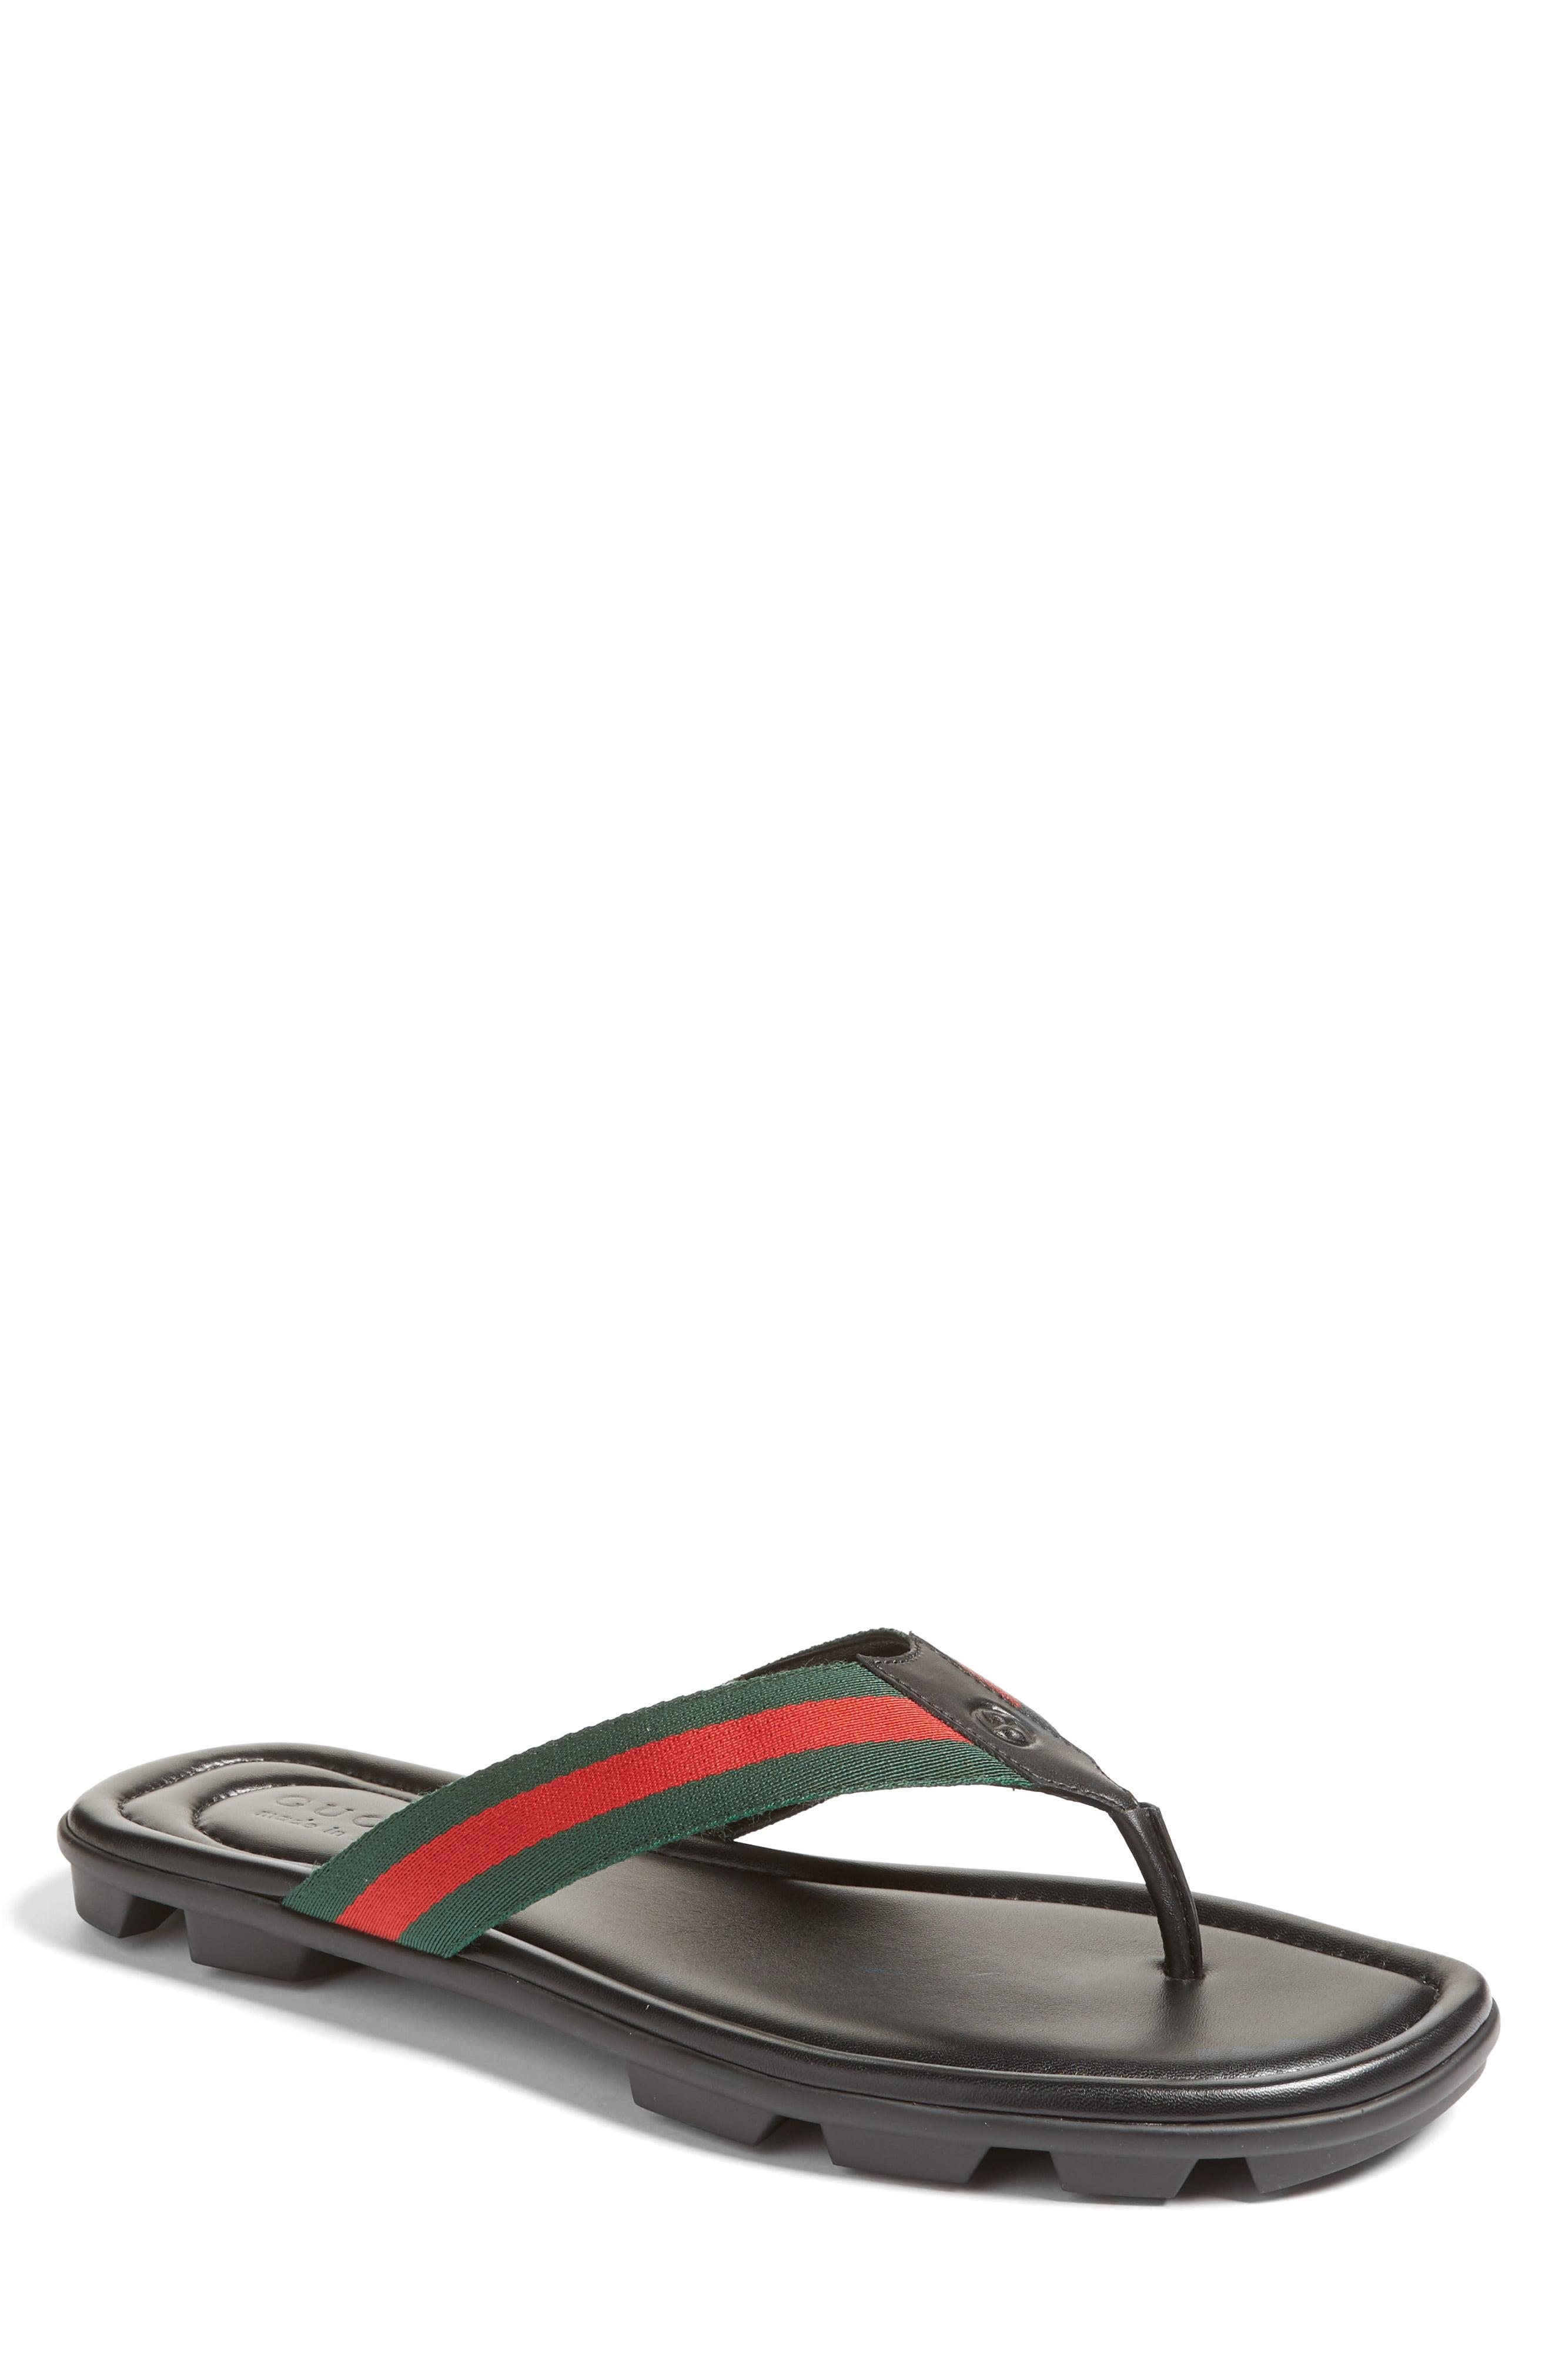 55438cdfb Lyst - Gucci Titan Flip Flop for Men - Save 5%